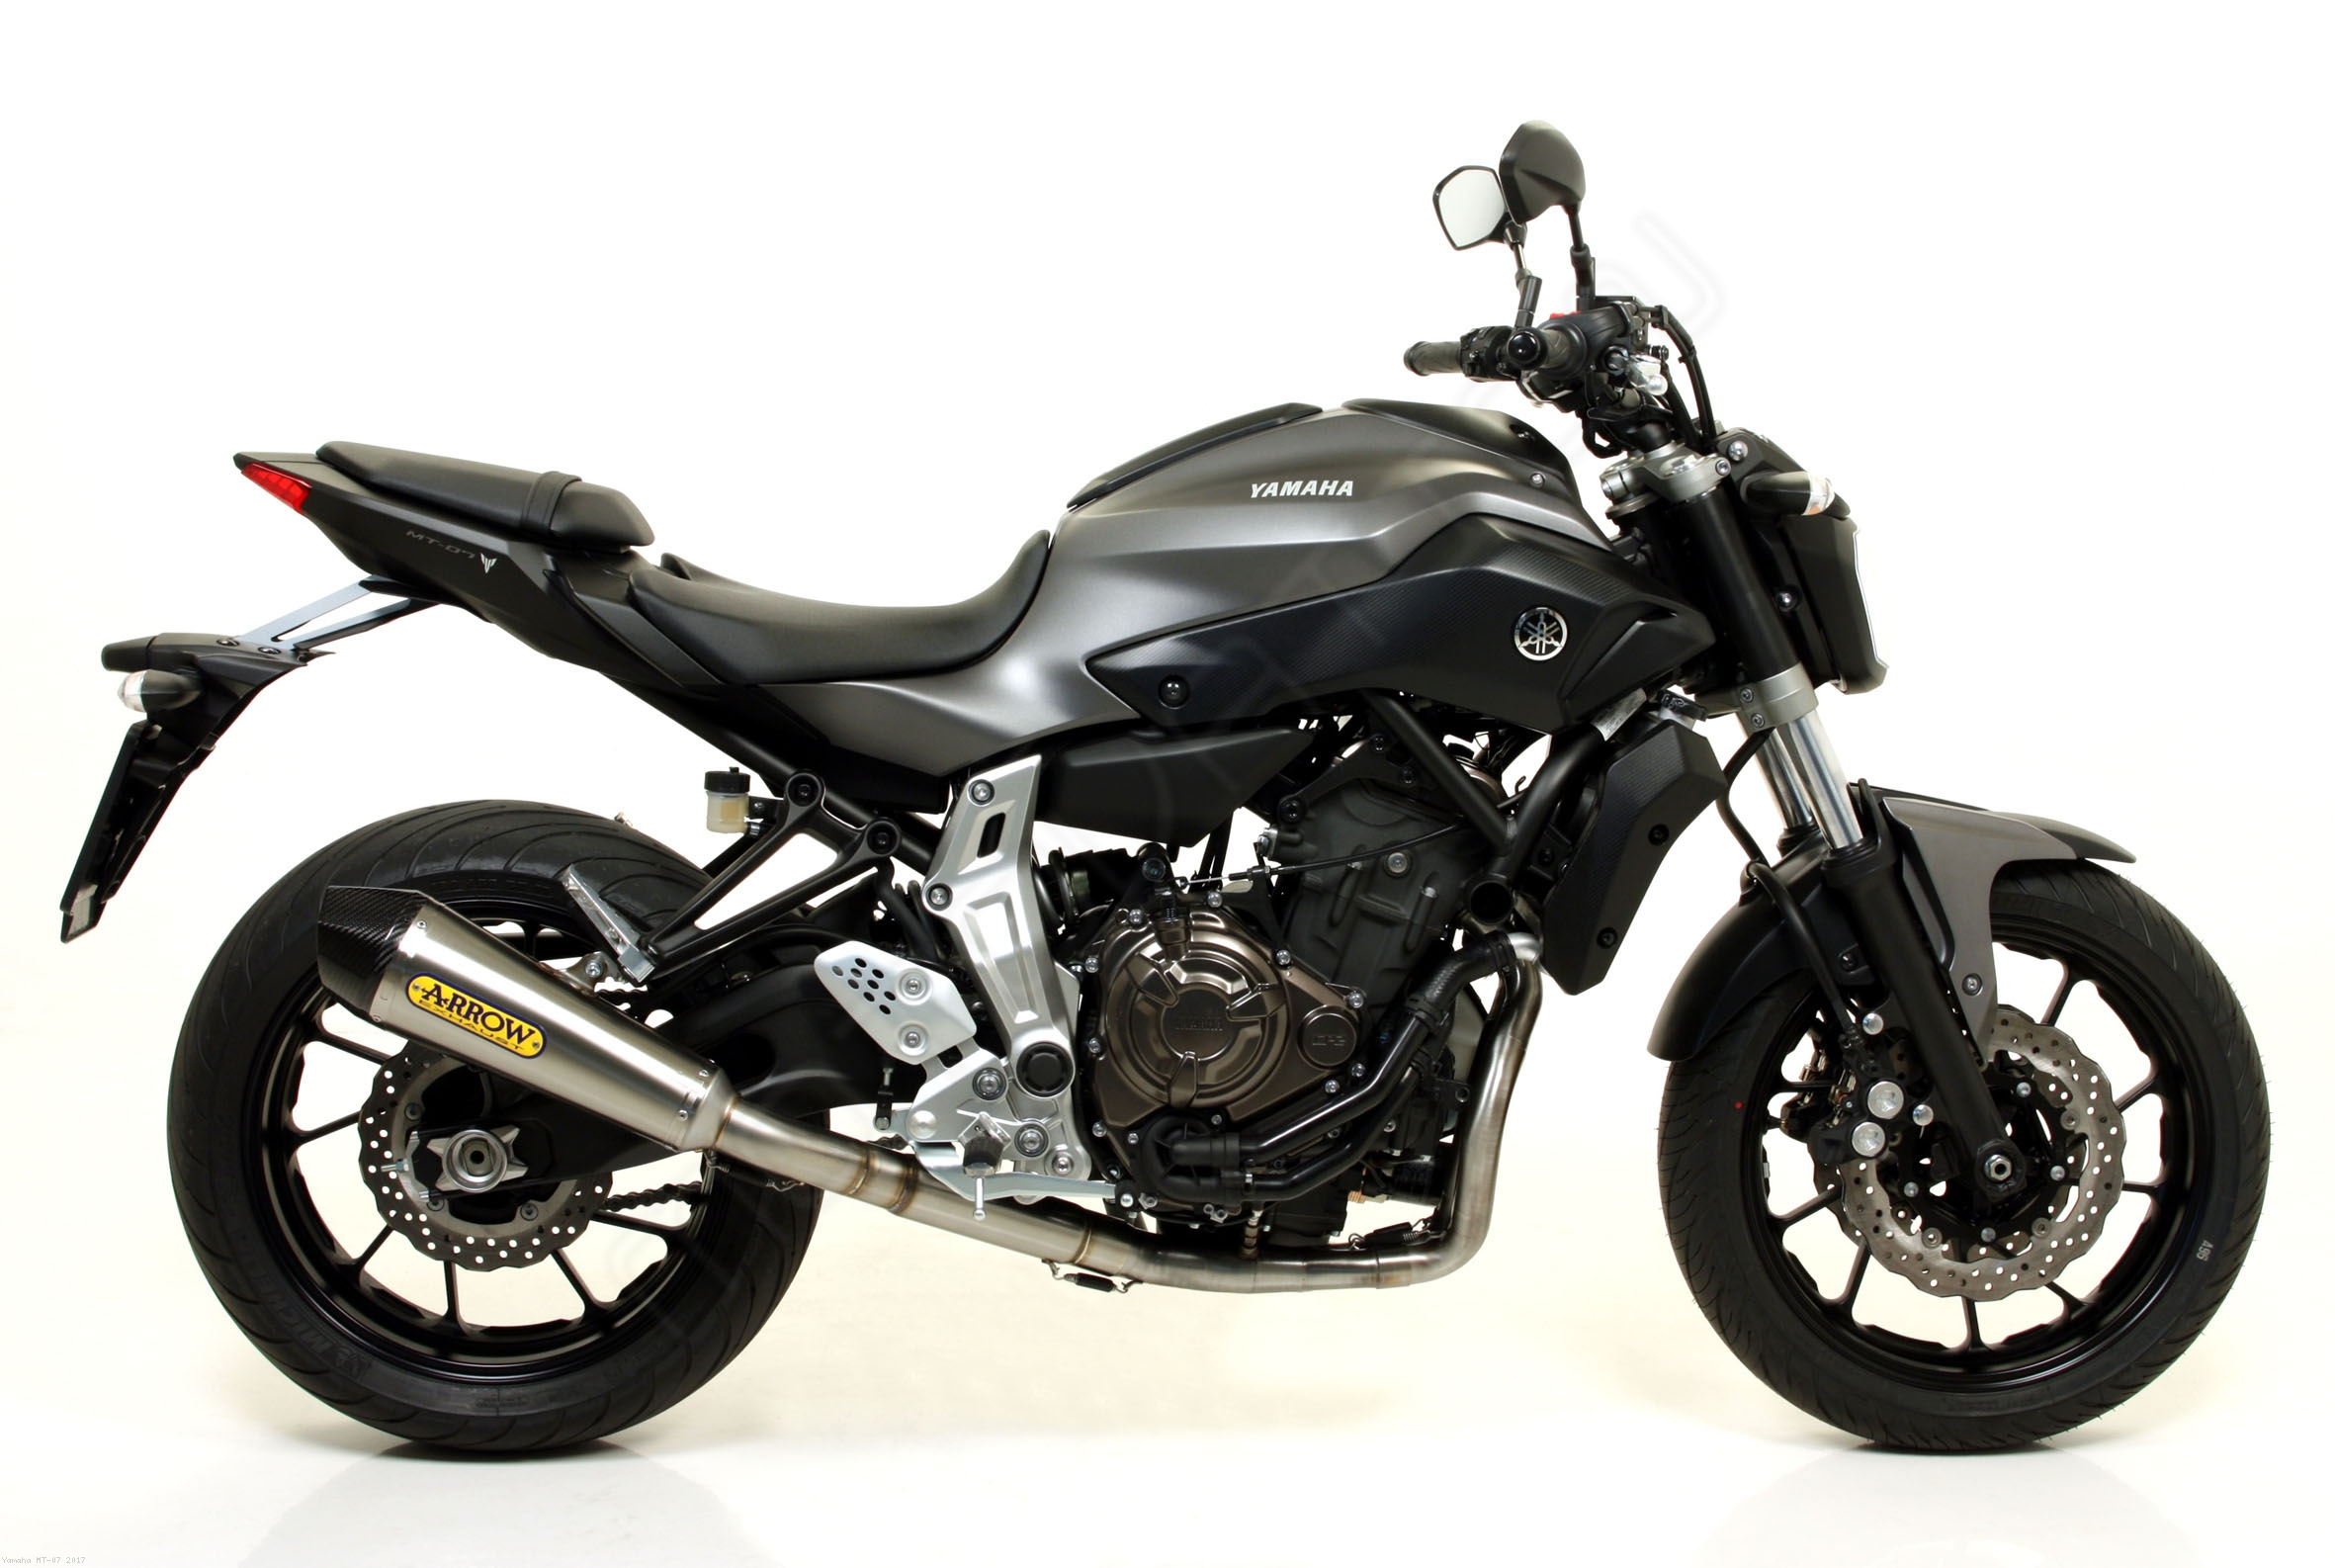 x kone exhaust system by arrow yamaha mt 07 2017 71817xki 71605mi. Black Bedroom Furniture Sets. Home Design Ideas